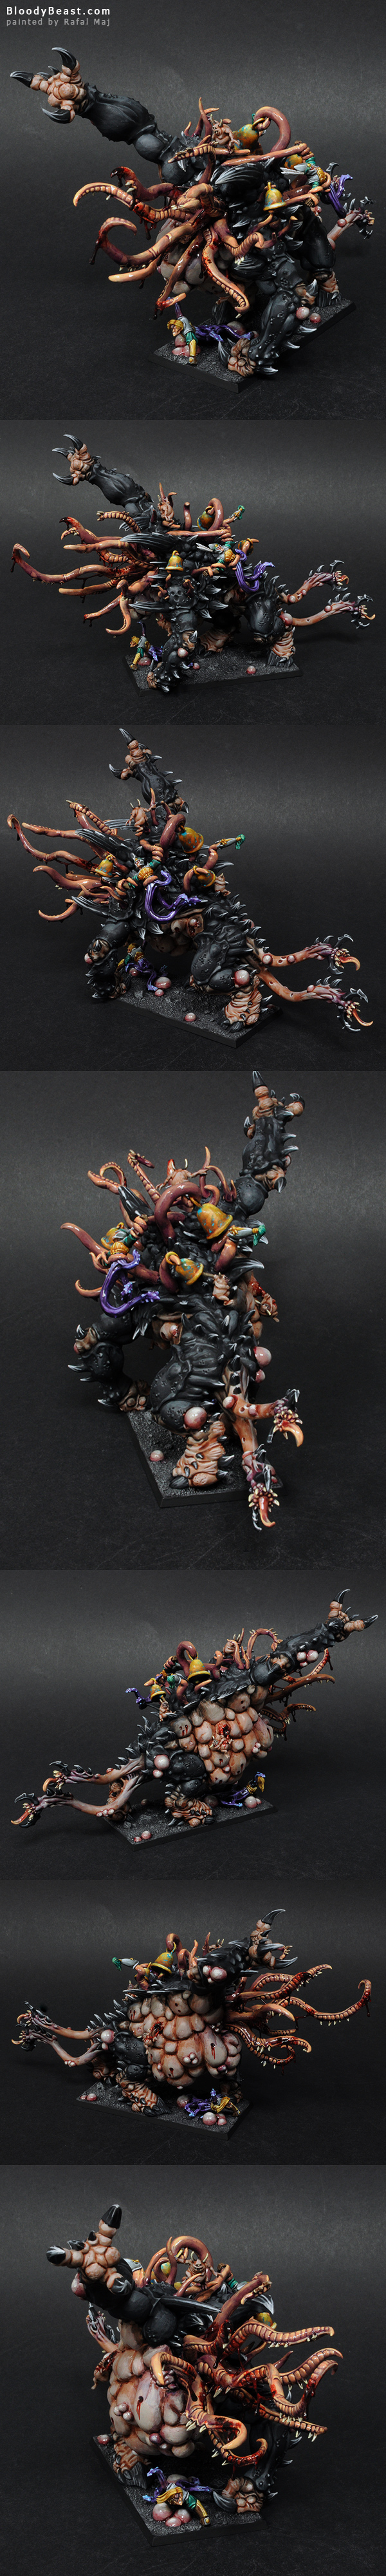 Mutalith Vortex Beast of Nurgle painted by Rafal Maj (BloodyBeast.com)